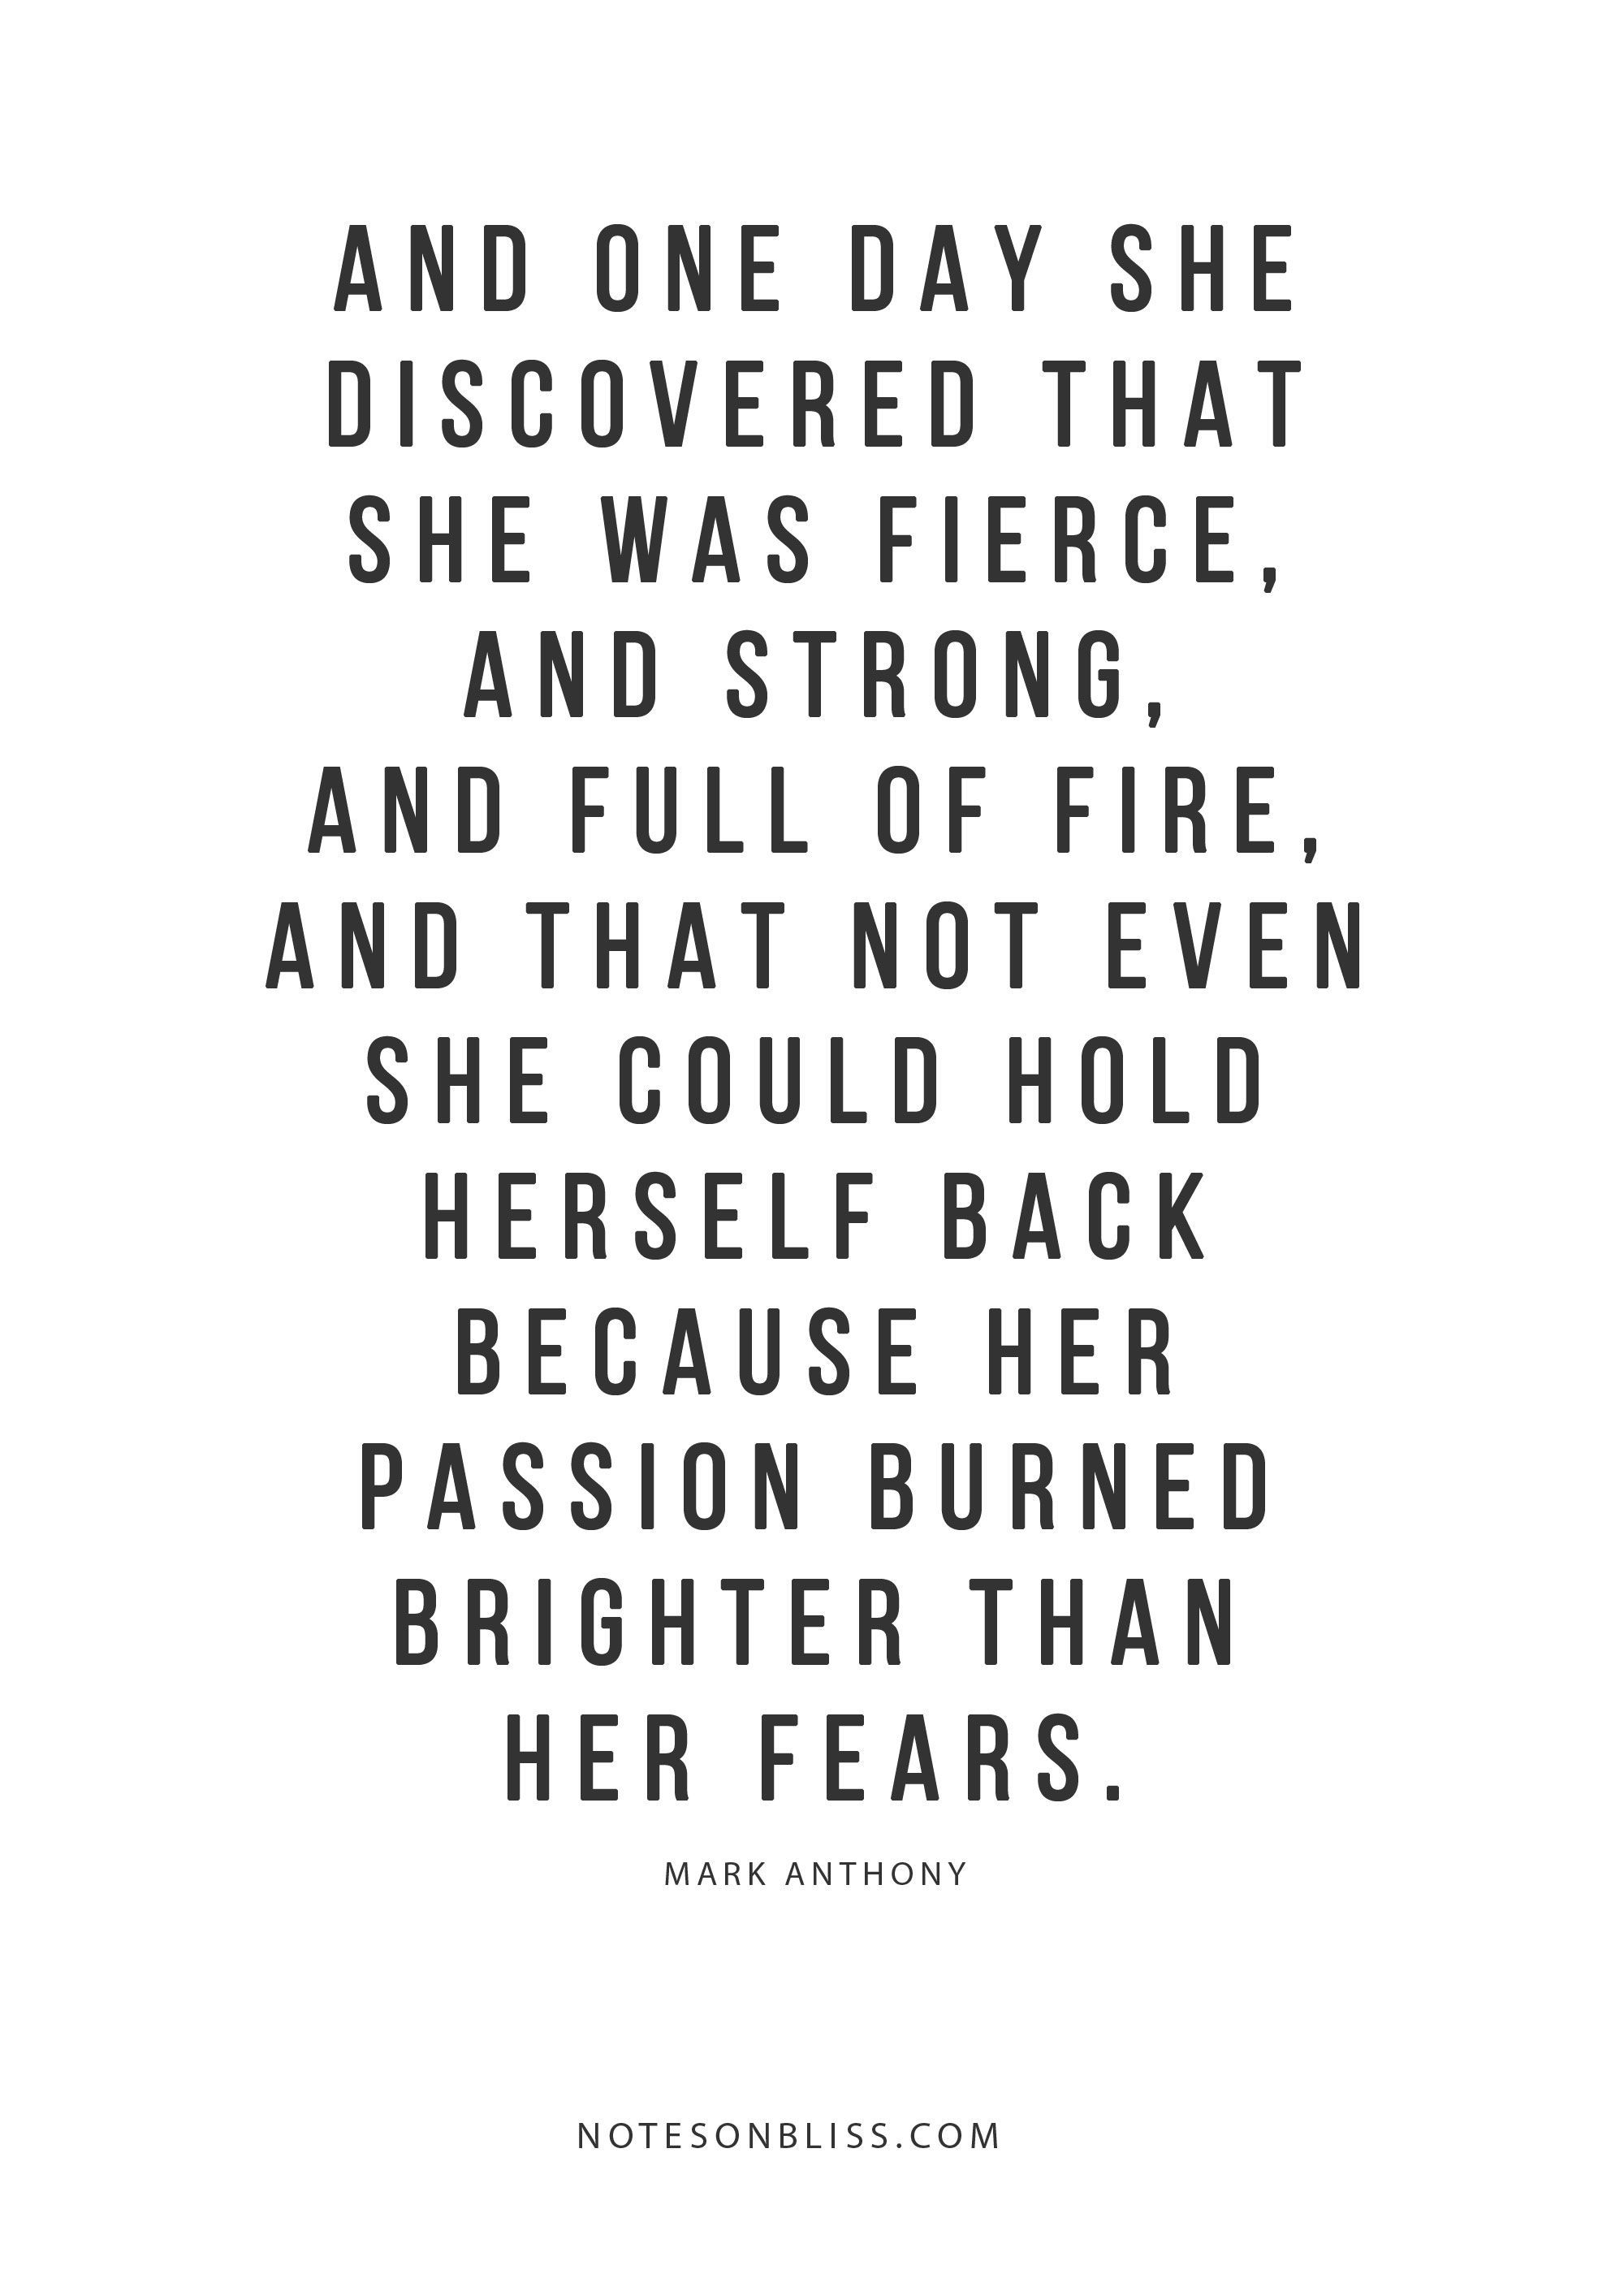 Fierce Love Quotes : fierce, quotes, Inspirational, Quotes, Change, Words,, Quotes,, Words